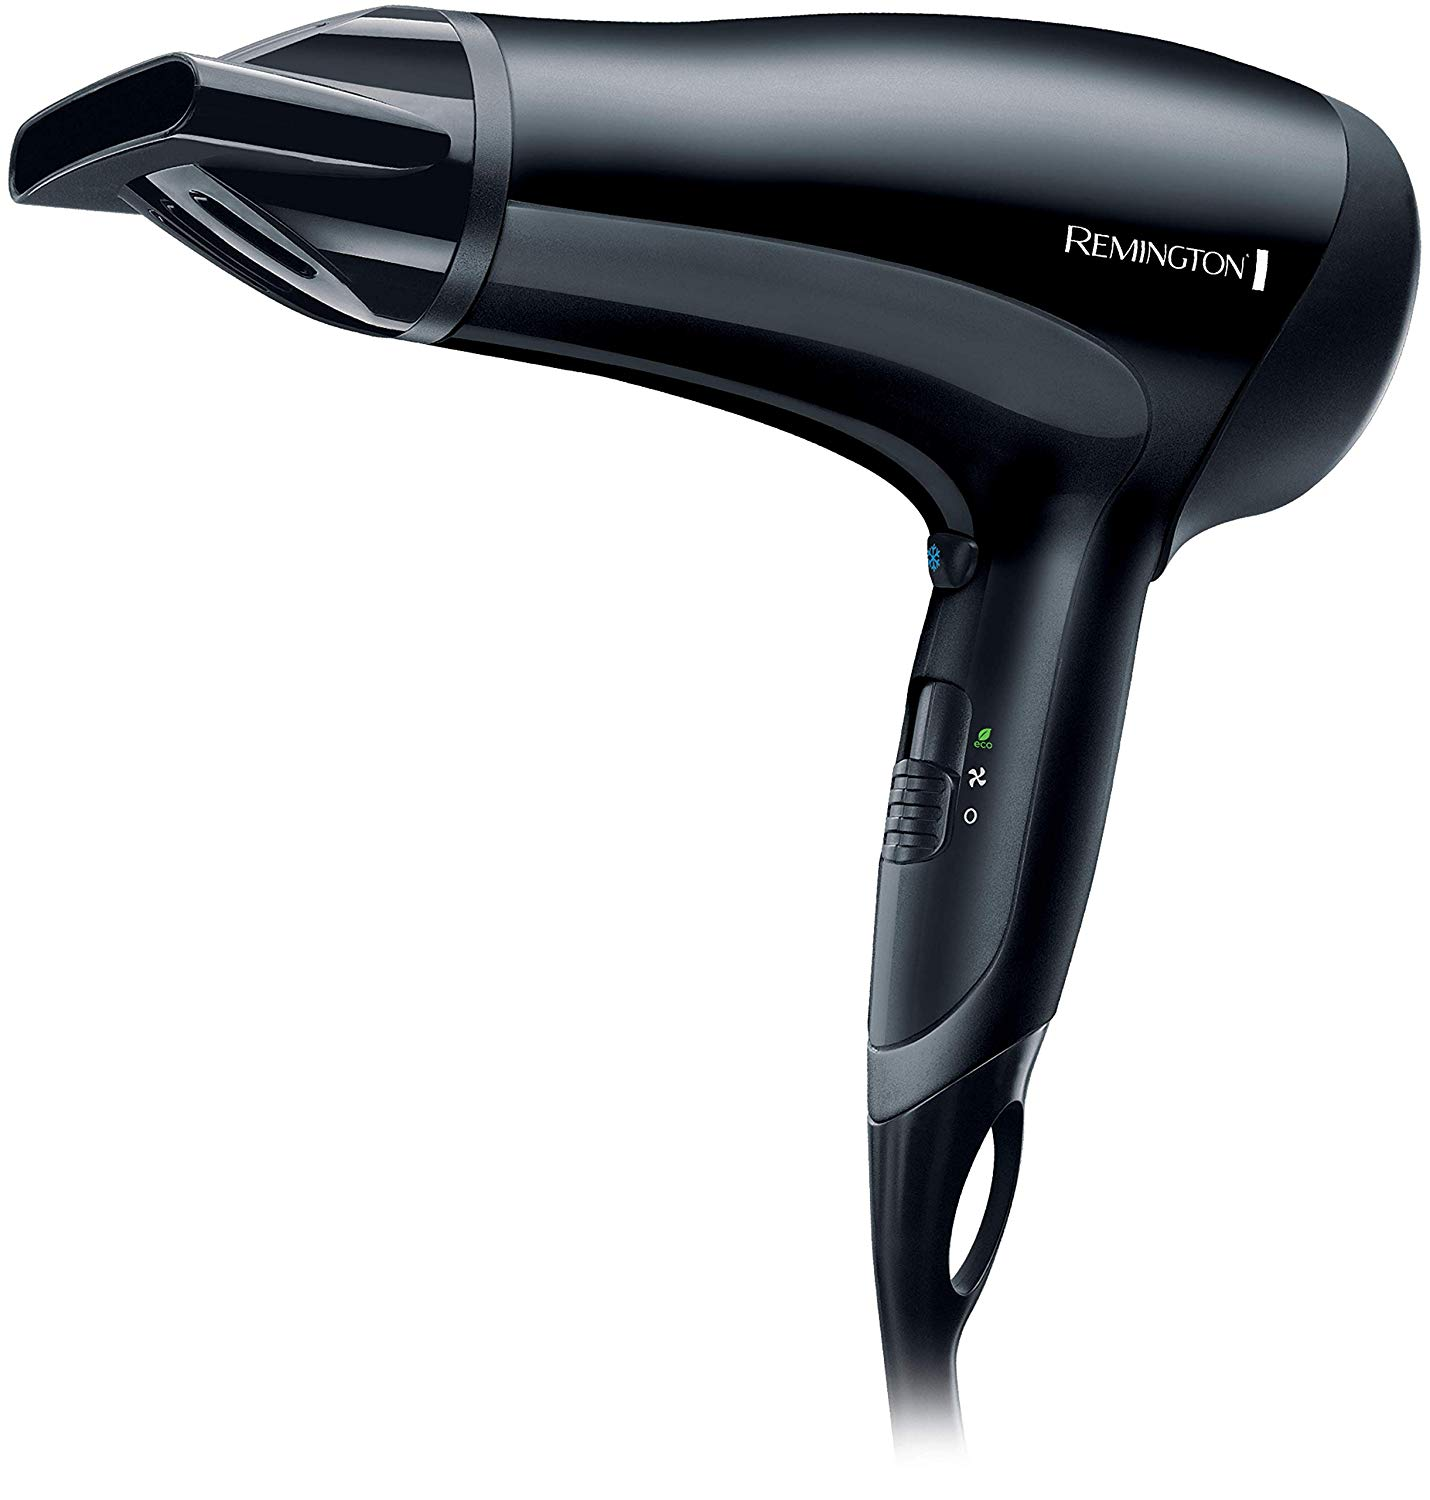 Remington Power Dry Lightweight Hair Dryer, 2000 W